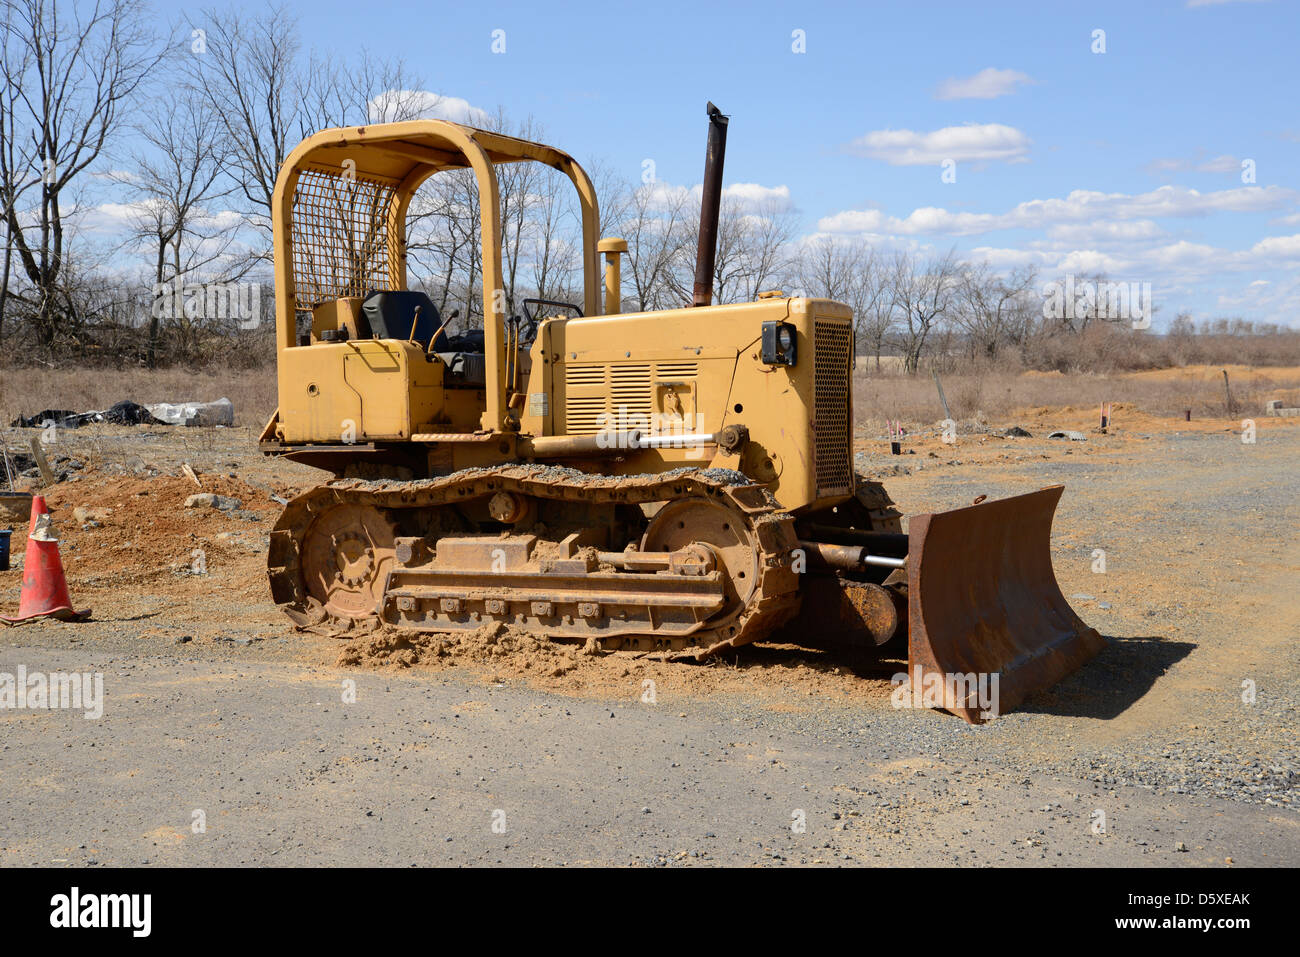 bulldozer at a construction site. A type of heavy duty equipment used in excavation. - Stock Image